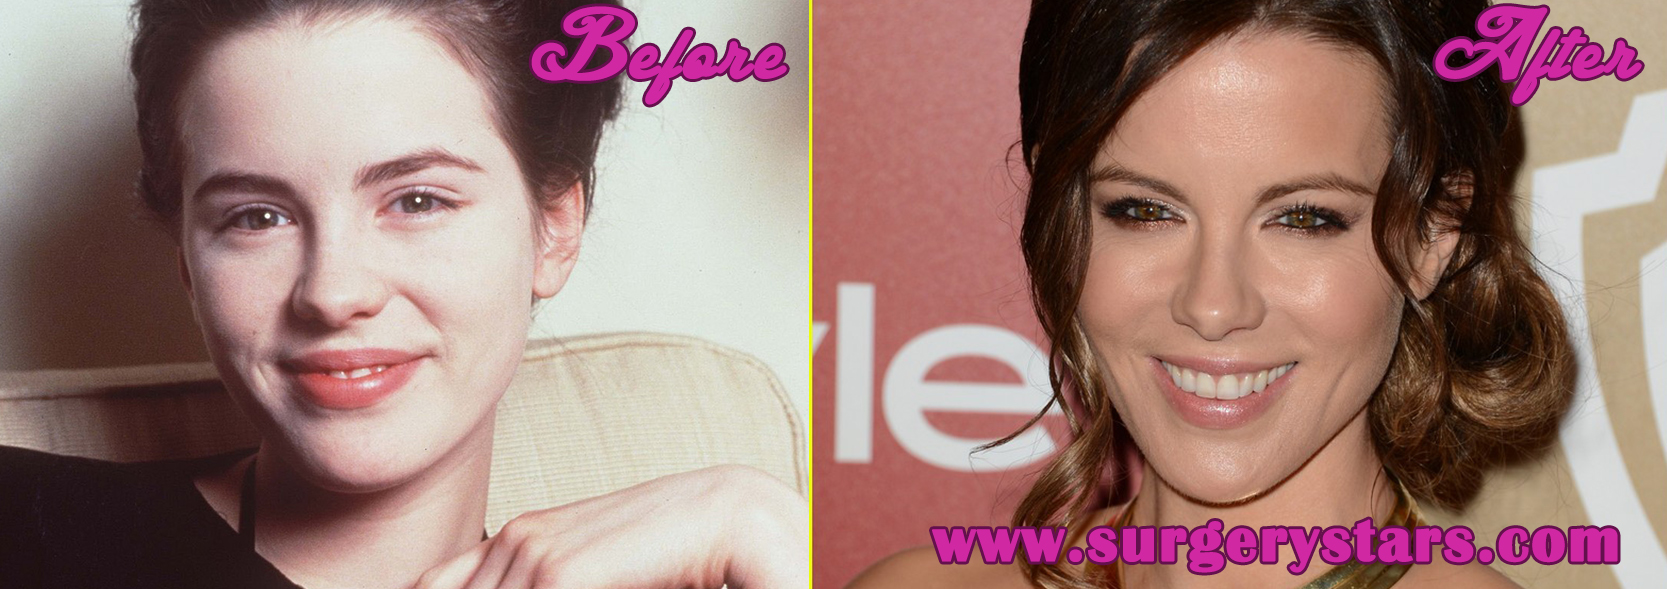 Kate Beckinsale Paltic Surgery